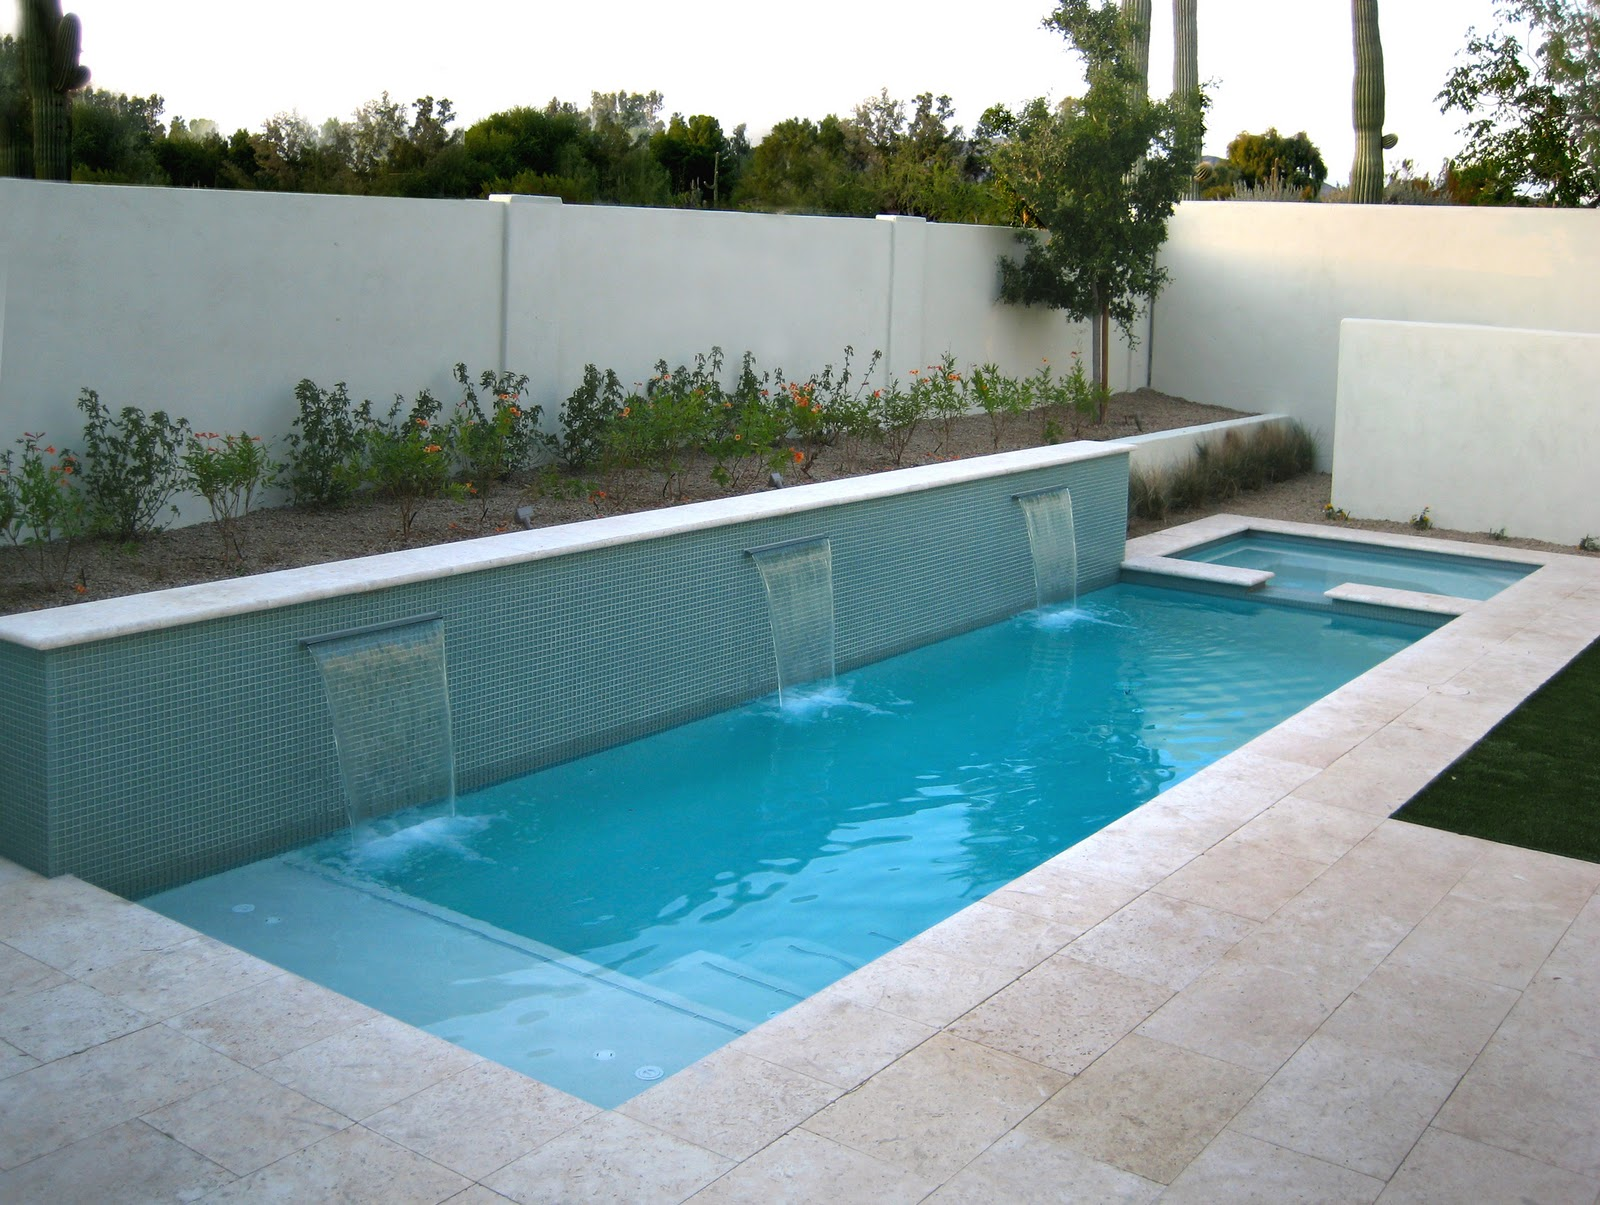 Alpentile glass tile swimming pools water feature or for Pool design tiles